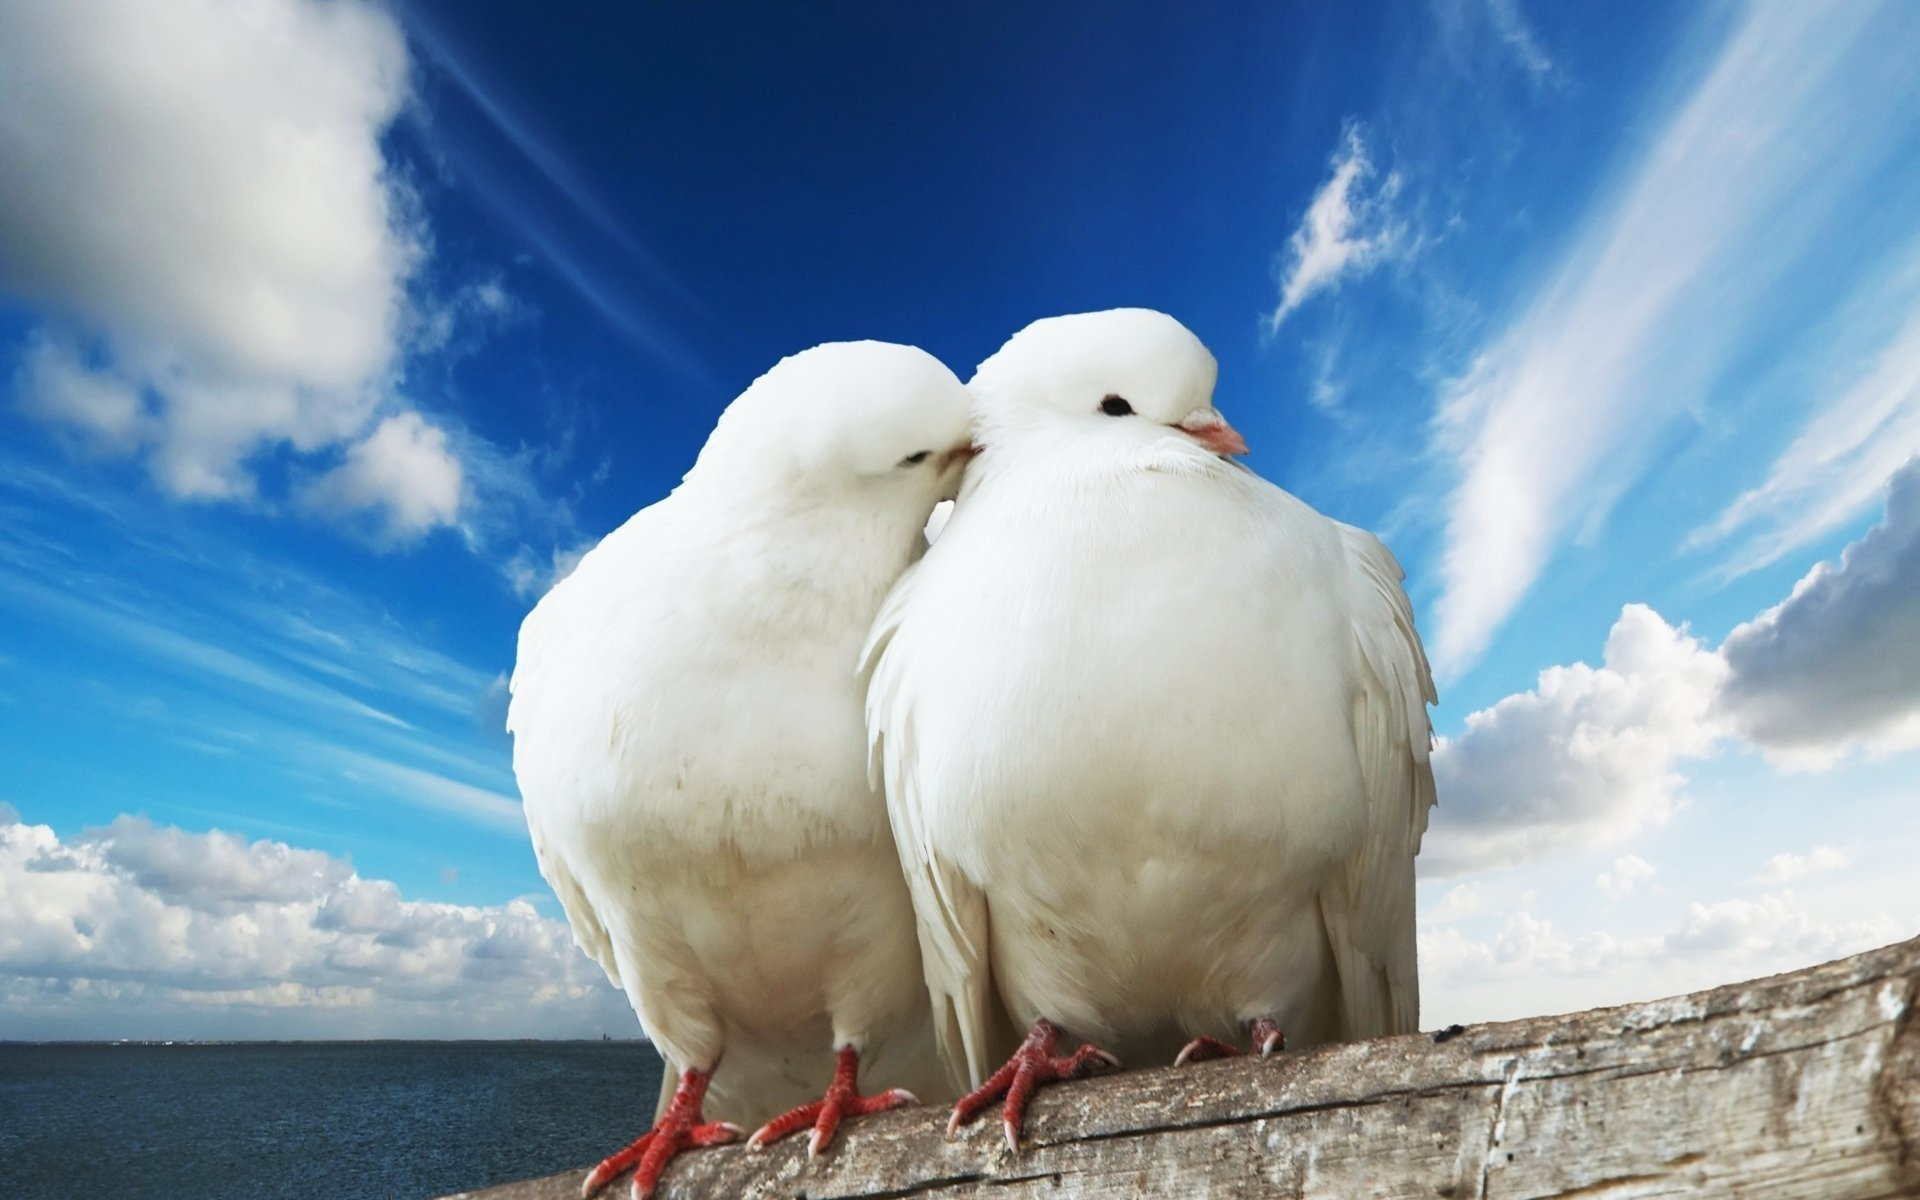 20919 download wallpaper Animals, Birds, Pigeons screensavers and pictures for free